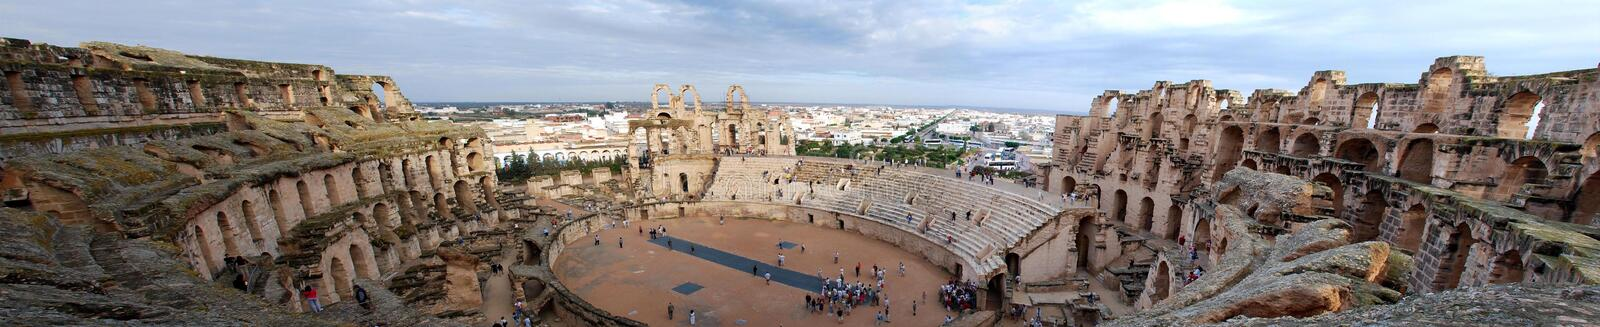 Download Tunis Arena Colosseum stock image. Image of view, amphitheatre - 17639611